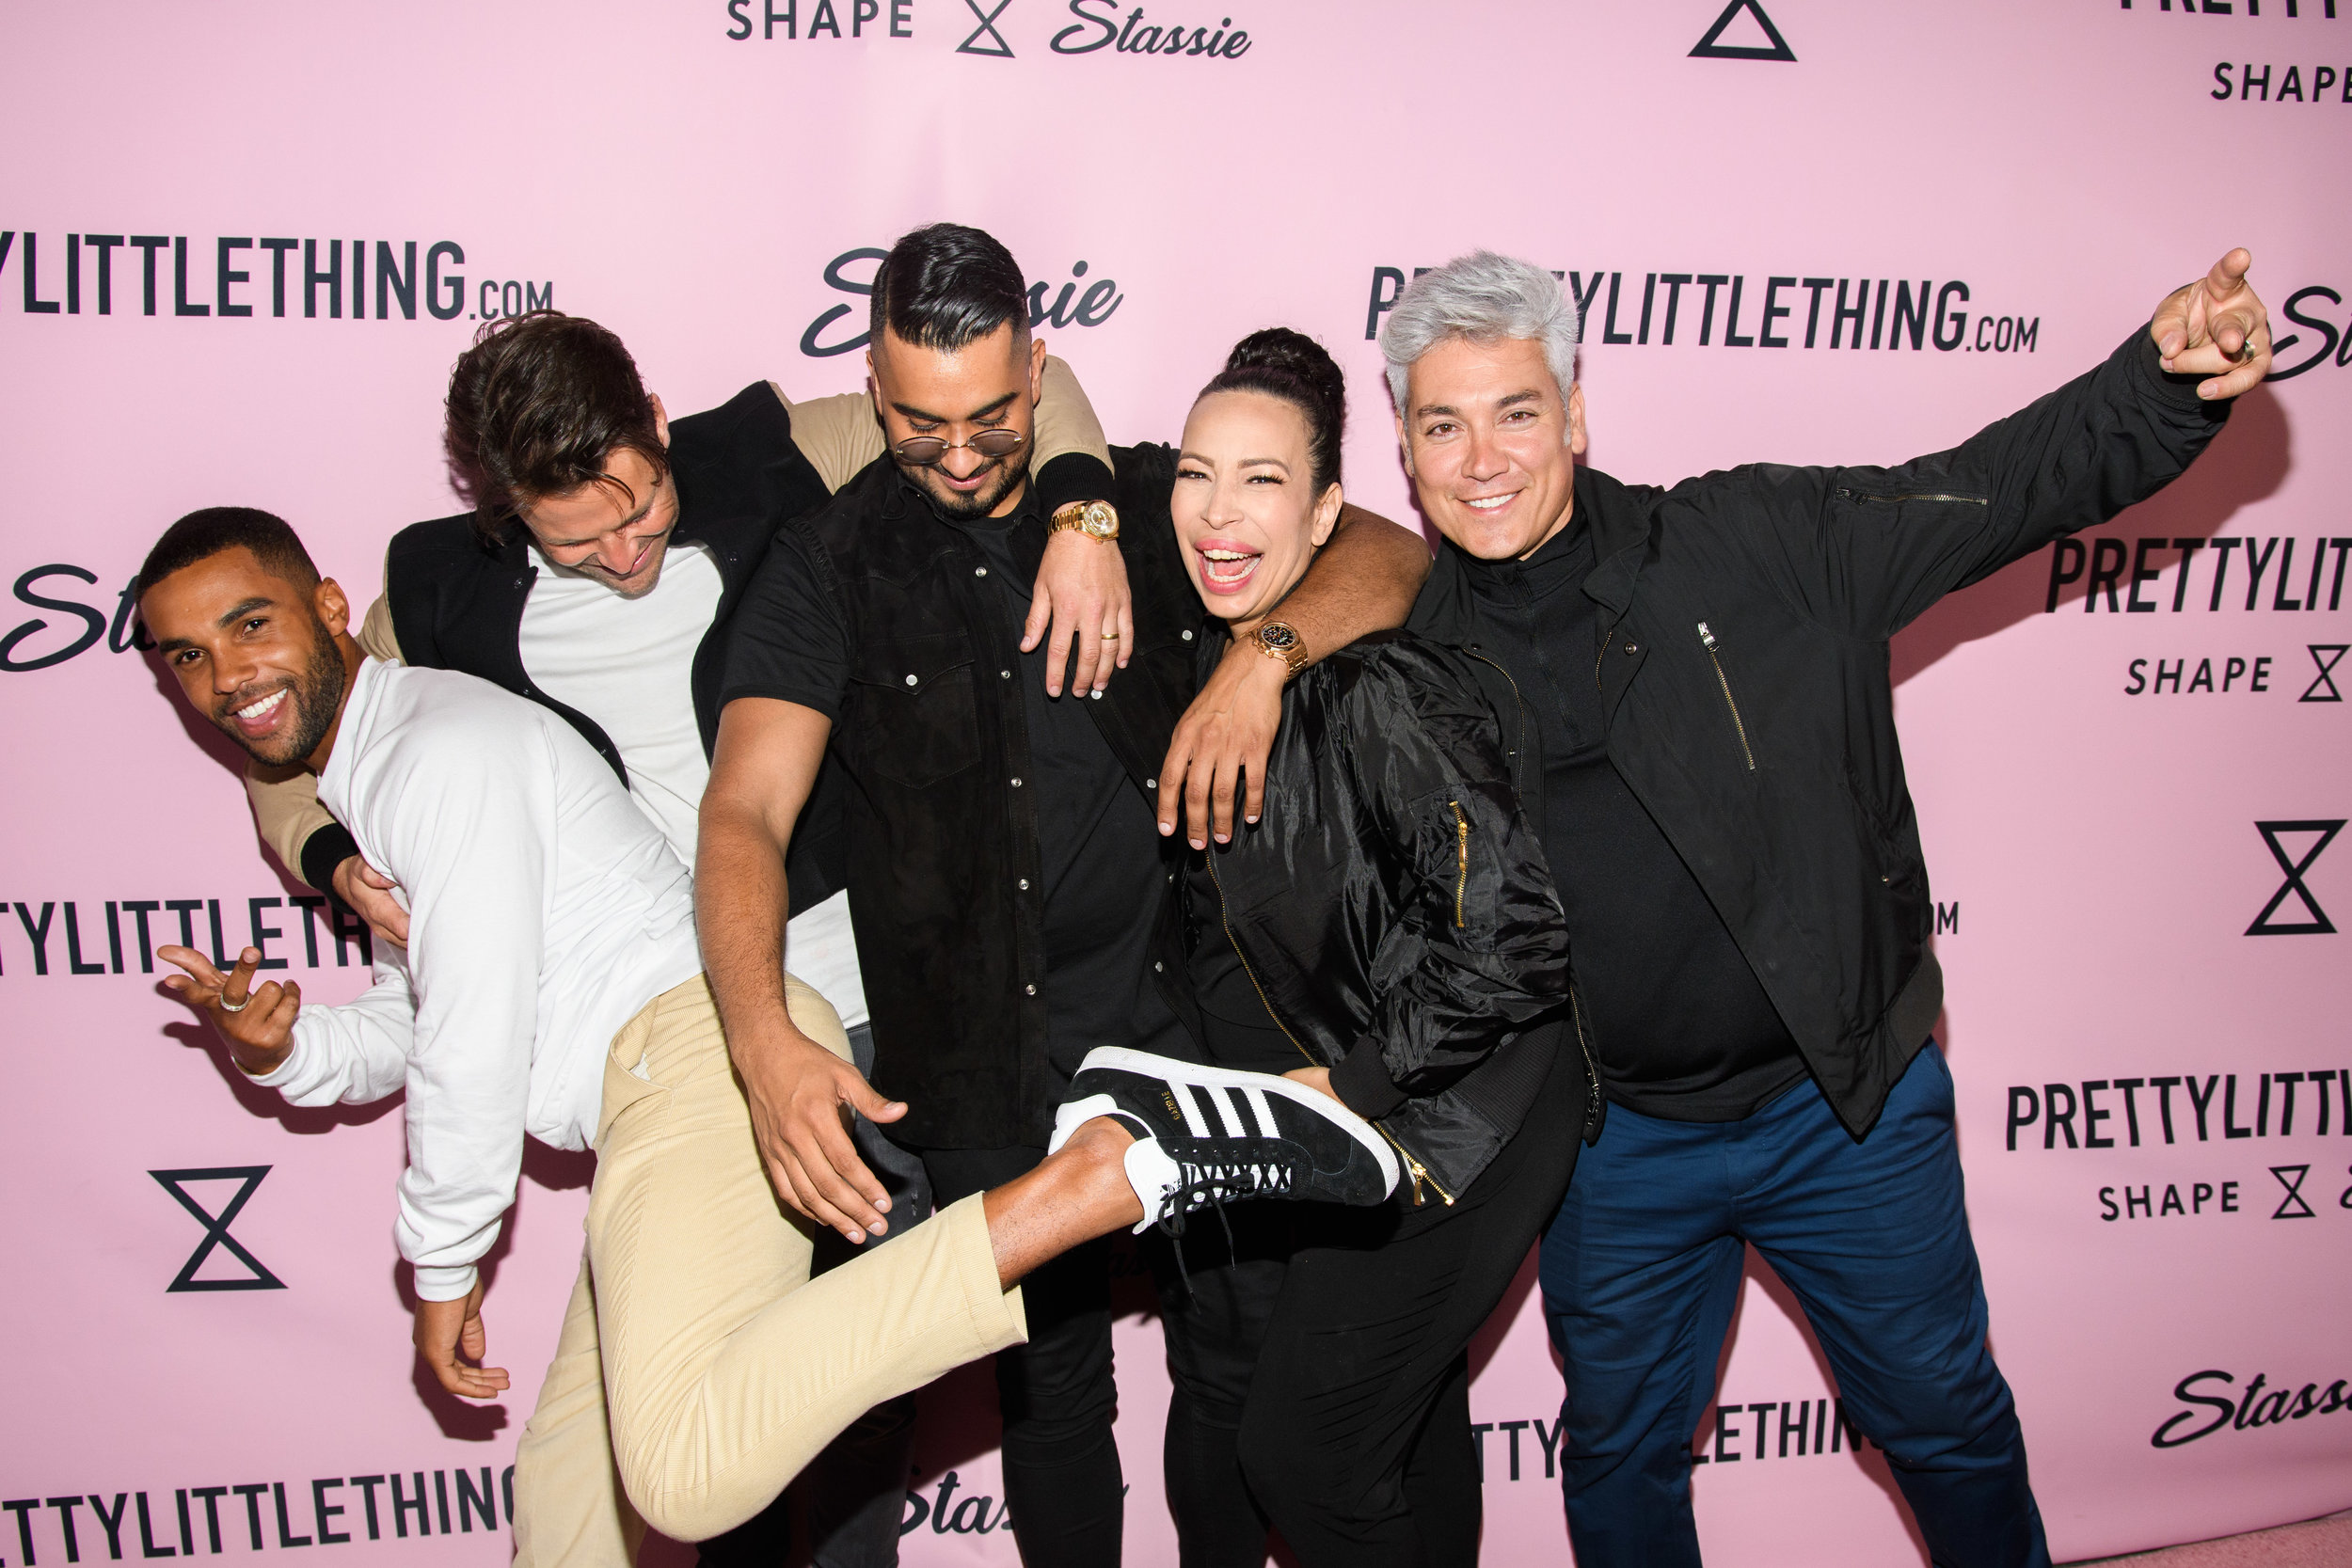 PrettyLittleThing New PLT Shape Collection with Stassie Celebrity Launch Party WOTP Lori and Herick of The Happen pose with Umar.jpg